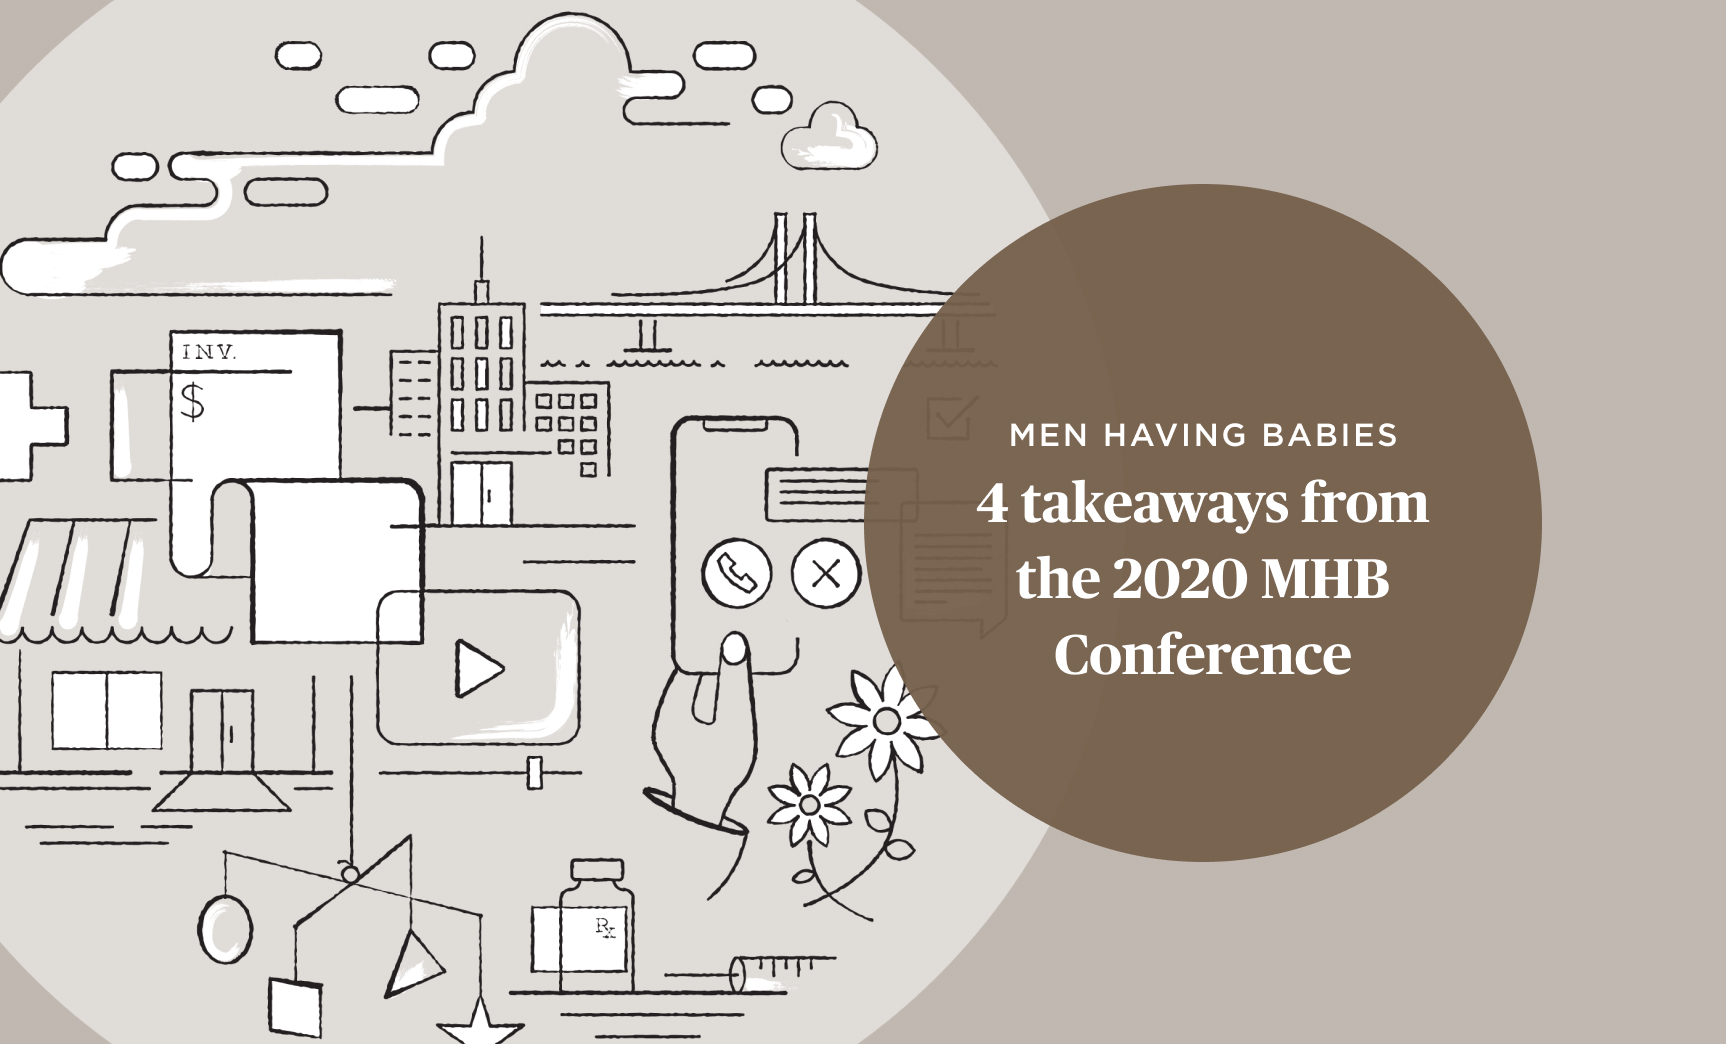 4 takeaways from the 2020 Men Having Babies Conference